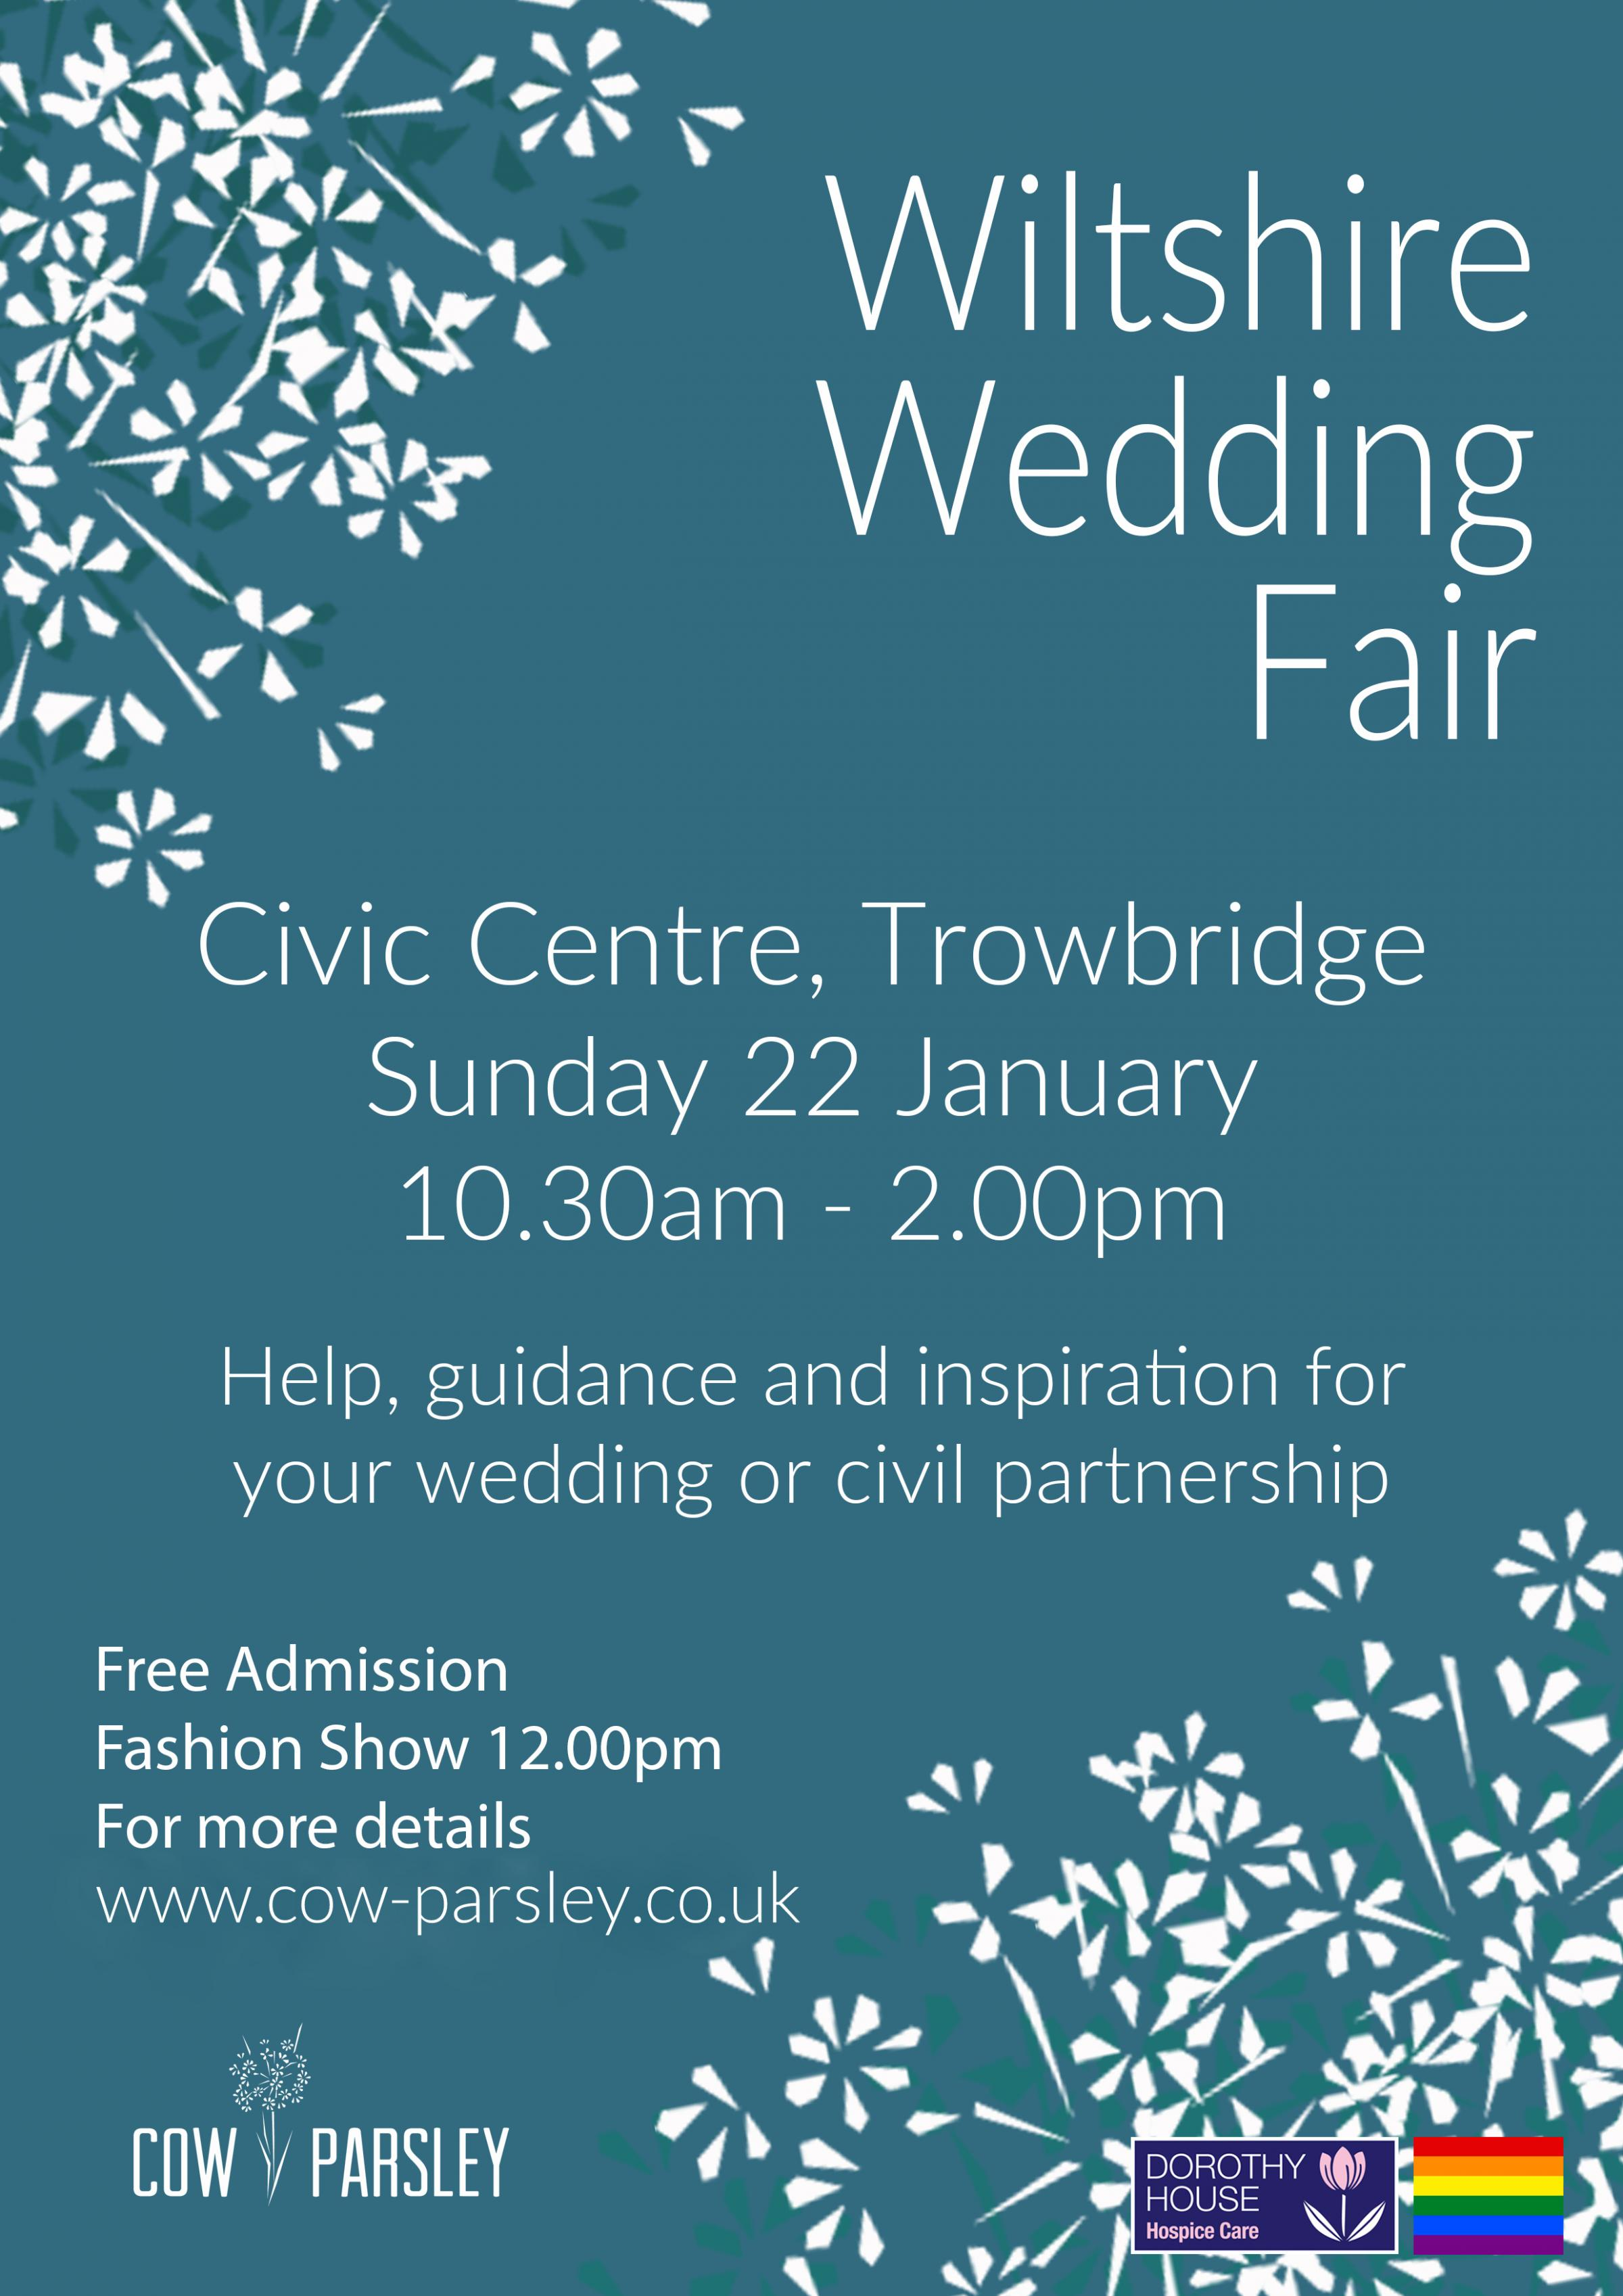 Cow Parsley Wiltshire Wedding Fair